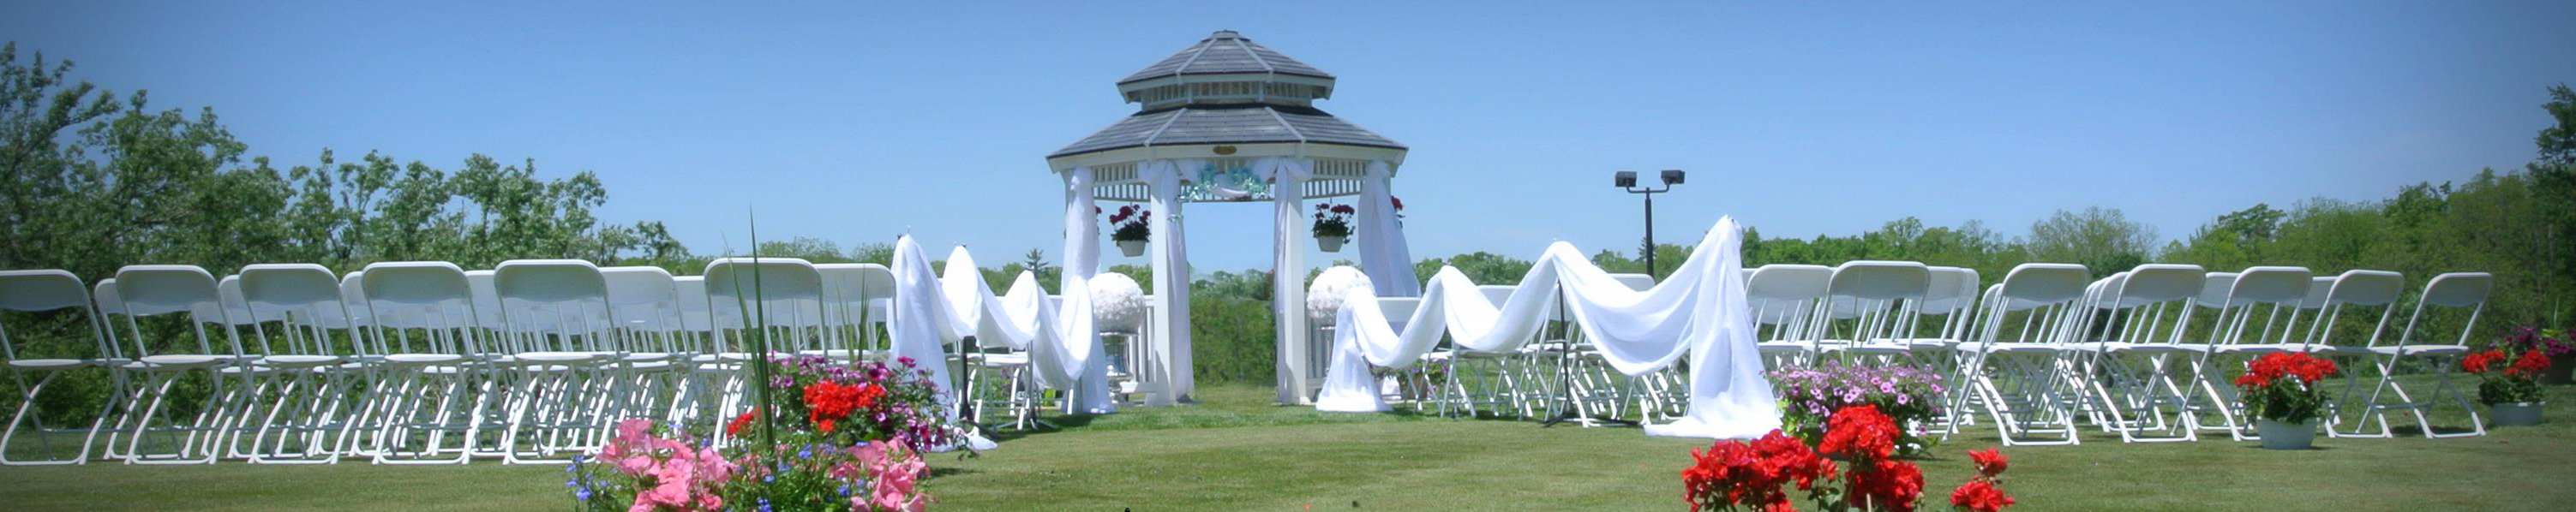 Astounding York Party Rental York Party Rental Chair Covers Sashes Unemploymentrelief Wooden Chair Designs For Living Room Unemploymentrelieforg